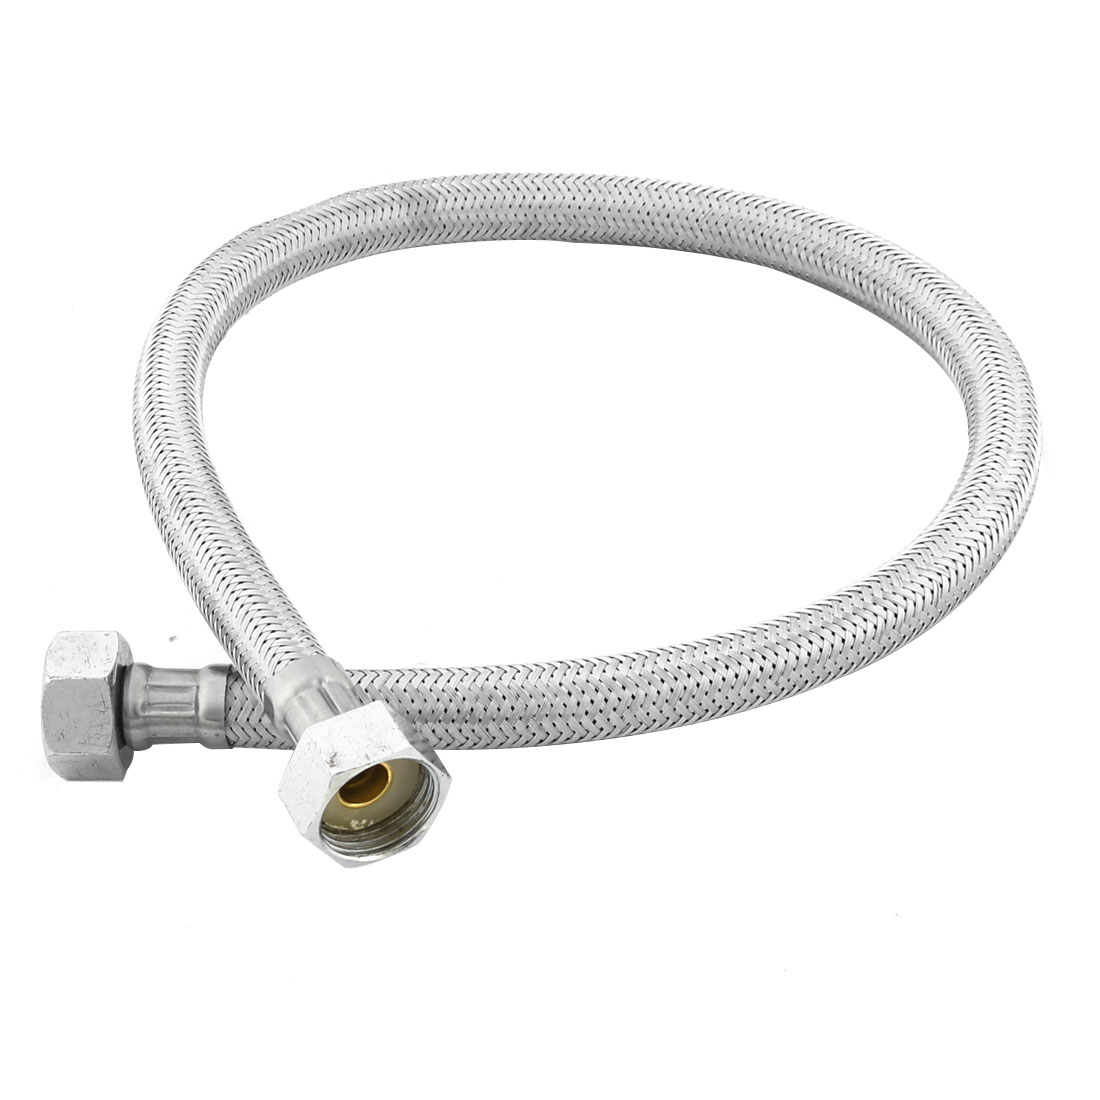 Unique Bargains Home Bathroom Shower Hose 20mm Thread Stainless Steel Silver Tone 60cm Length